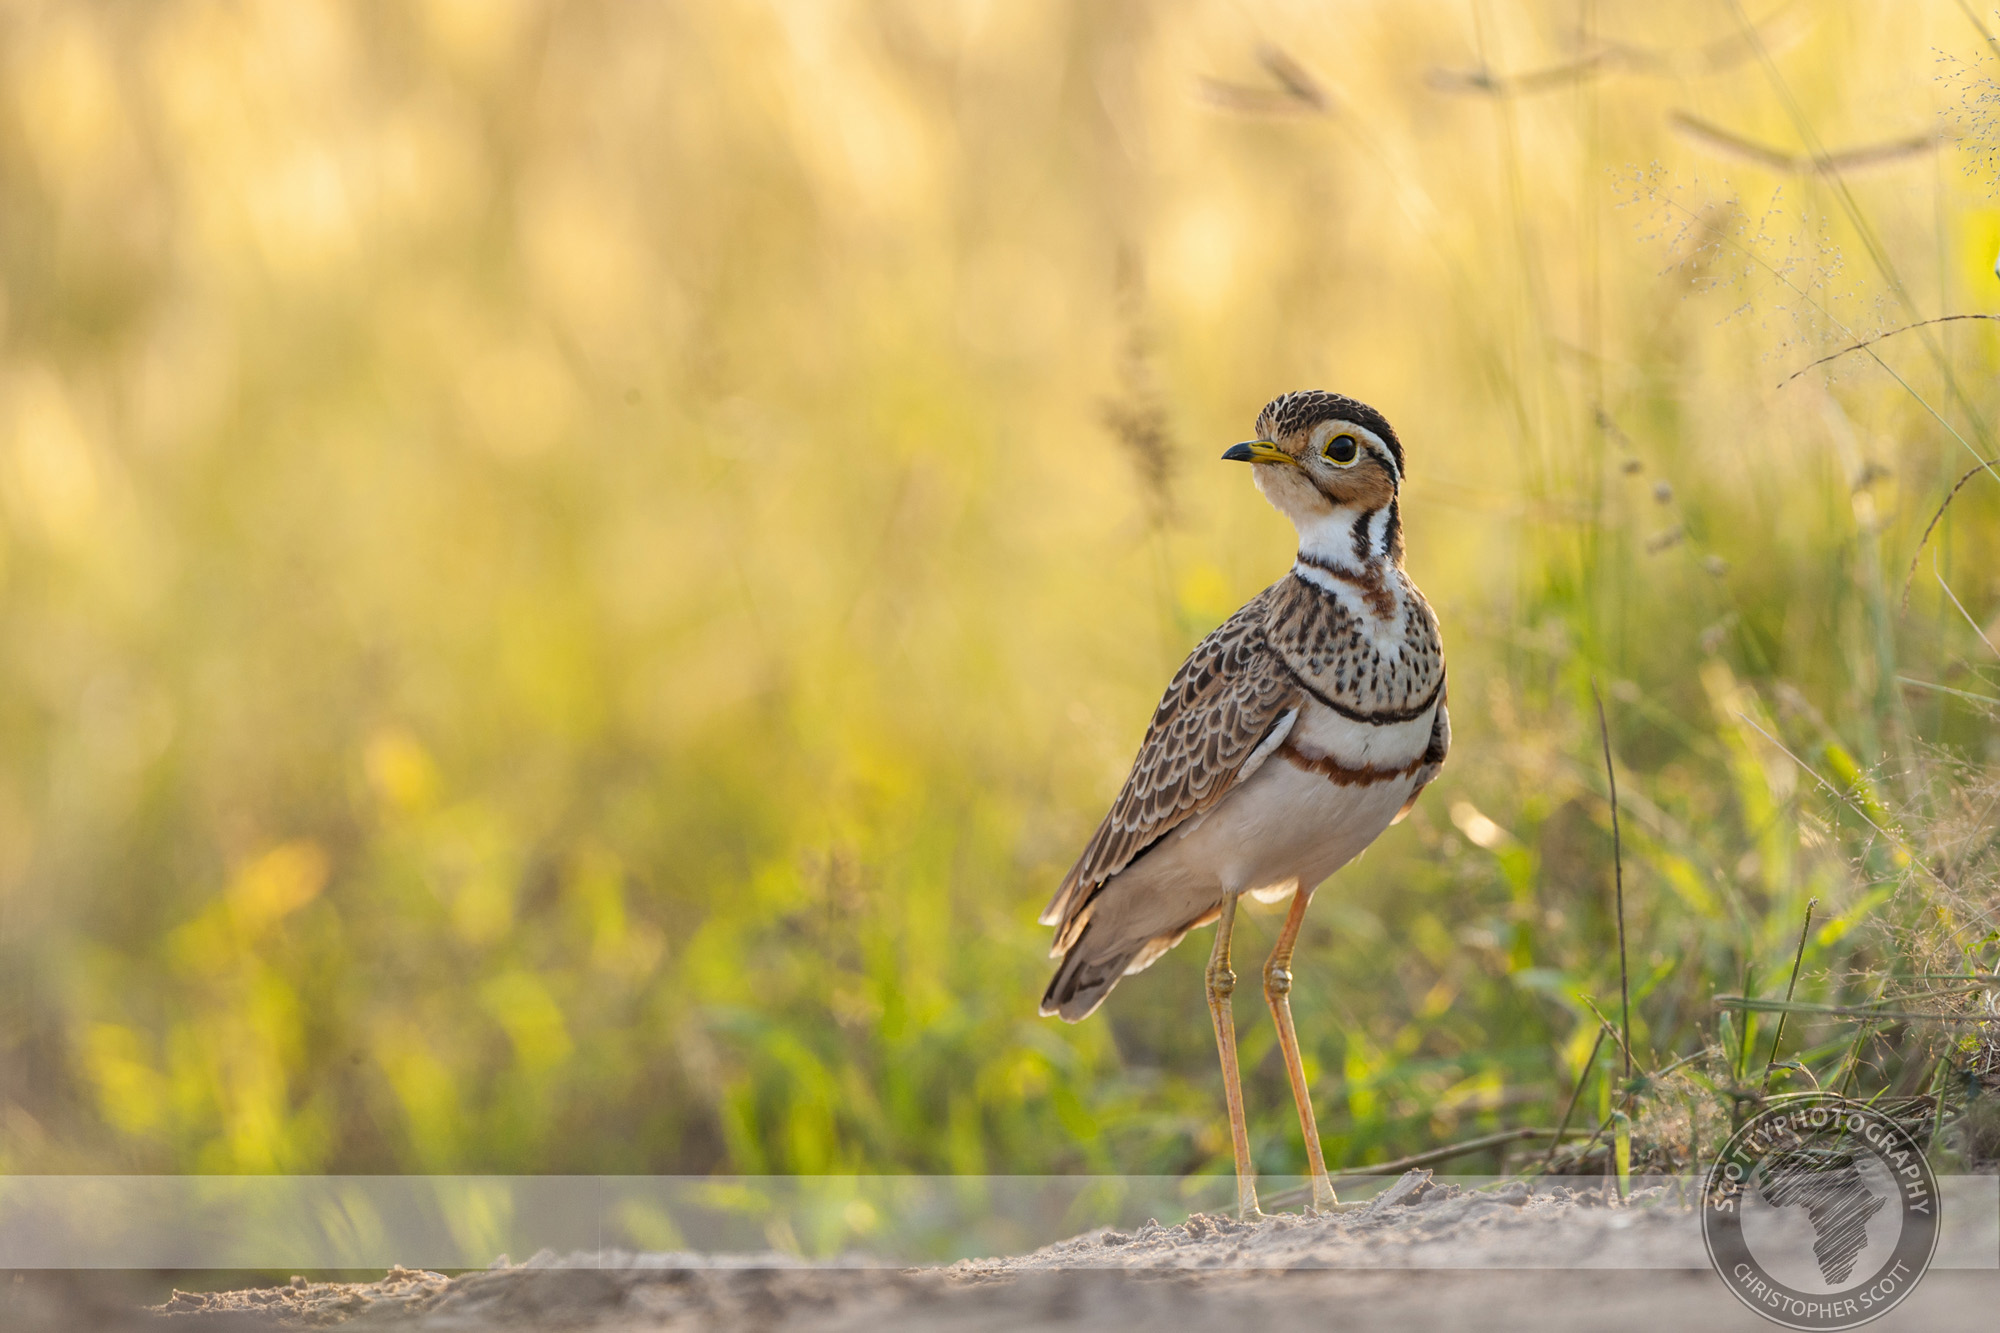 Courser, Thre Banded-97 copy.jpg